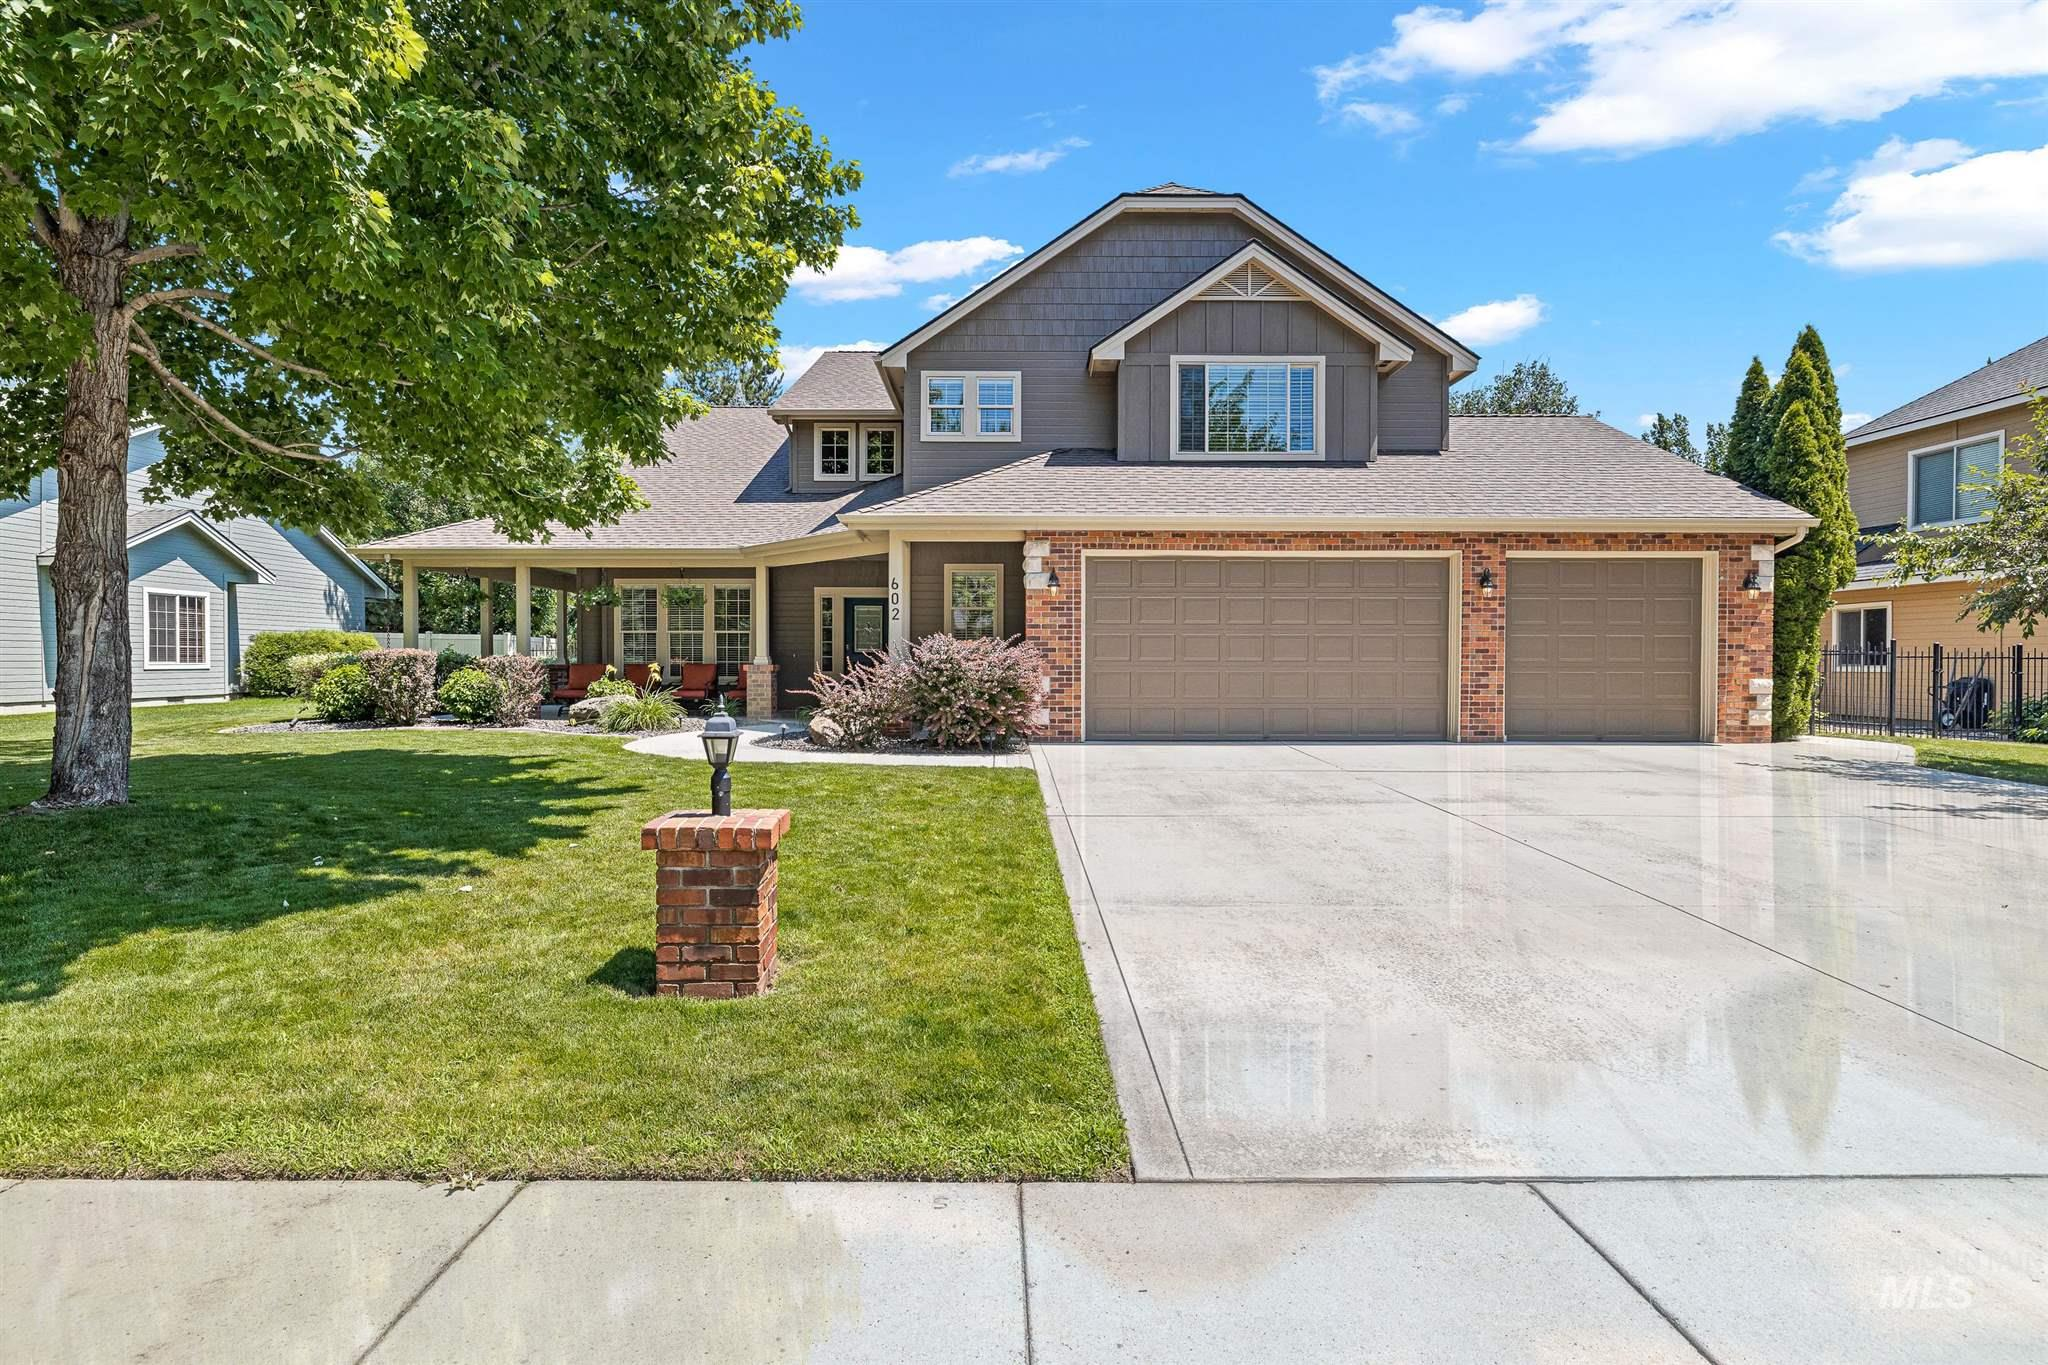 602 N Clearpoint Way, Eagle, ID 83616